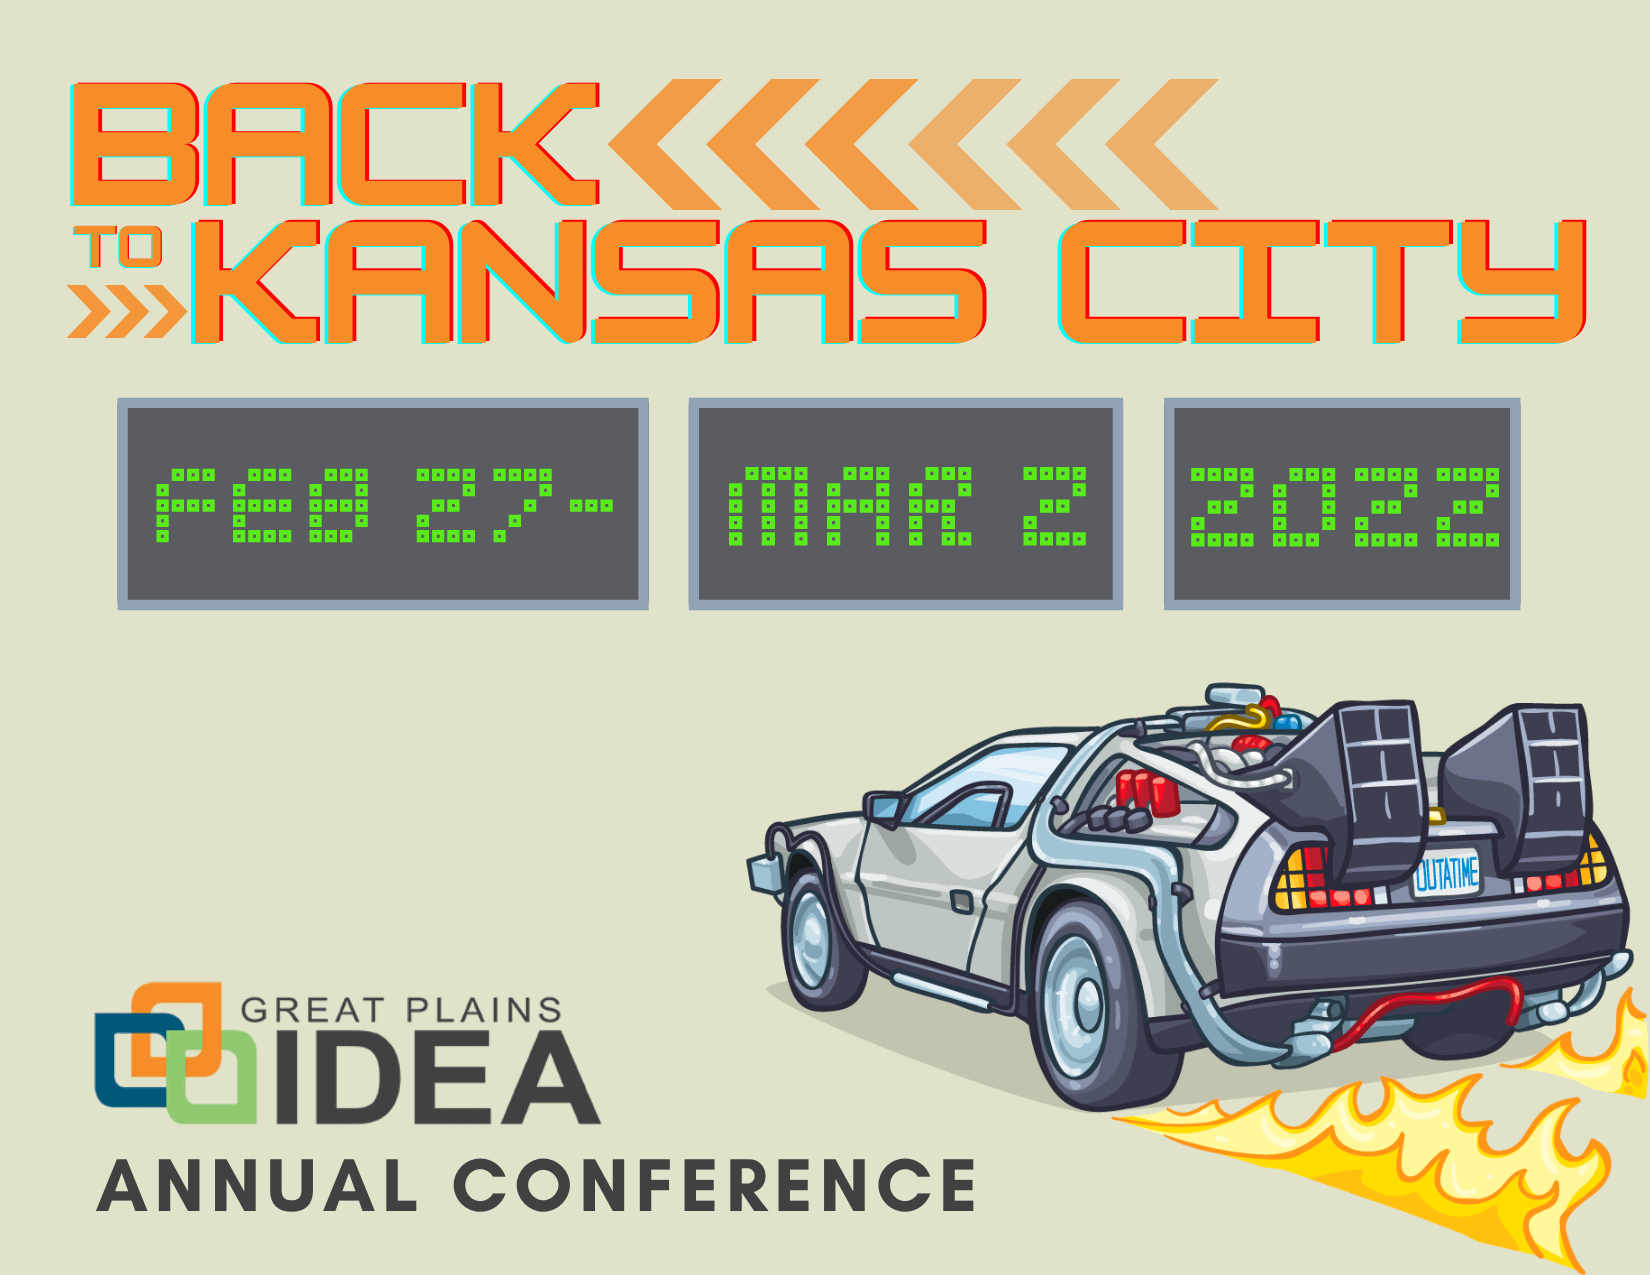 The 2022 annual conference will be back in Kansas City February 27-March 2.